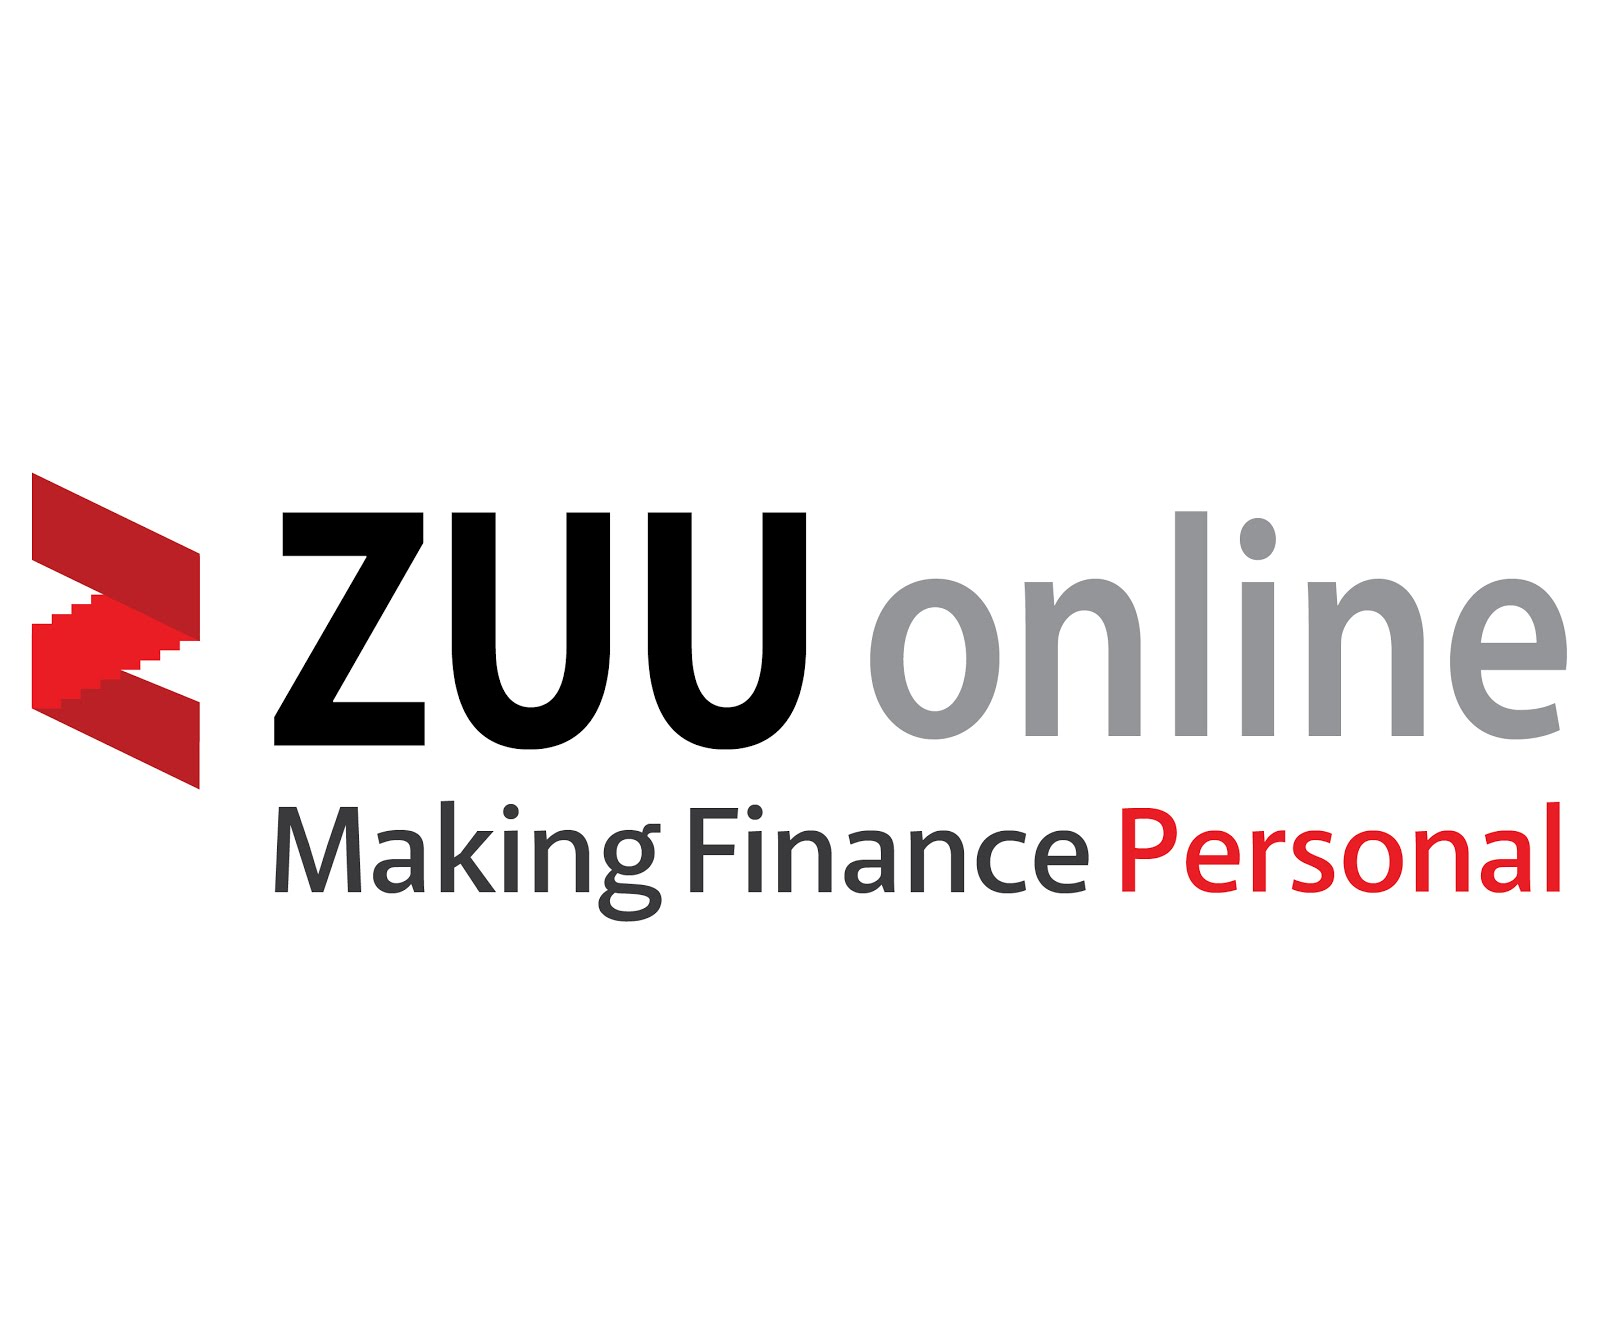 ZuuOnline - Making Finance Personal